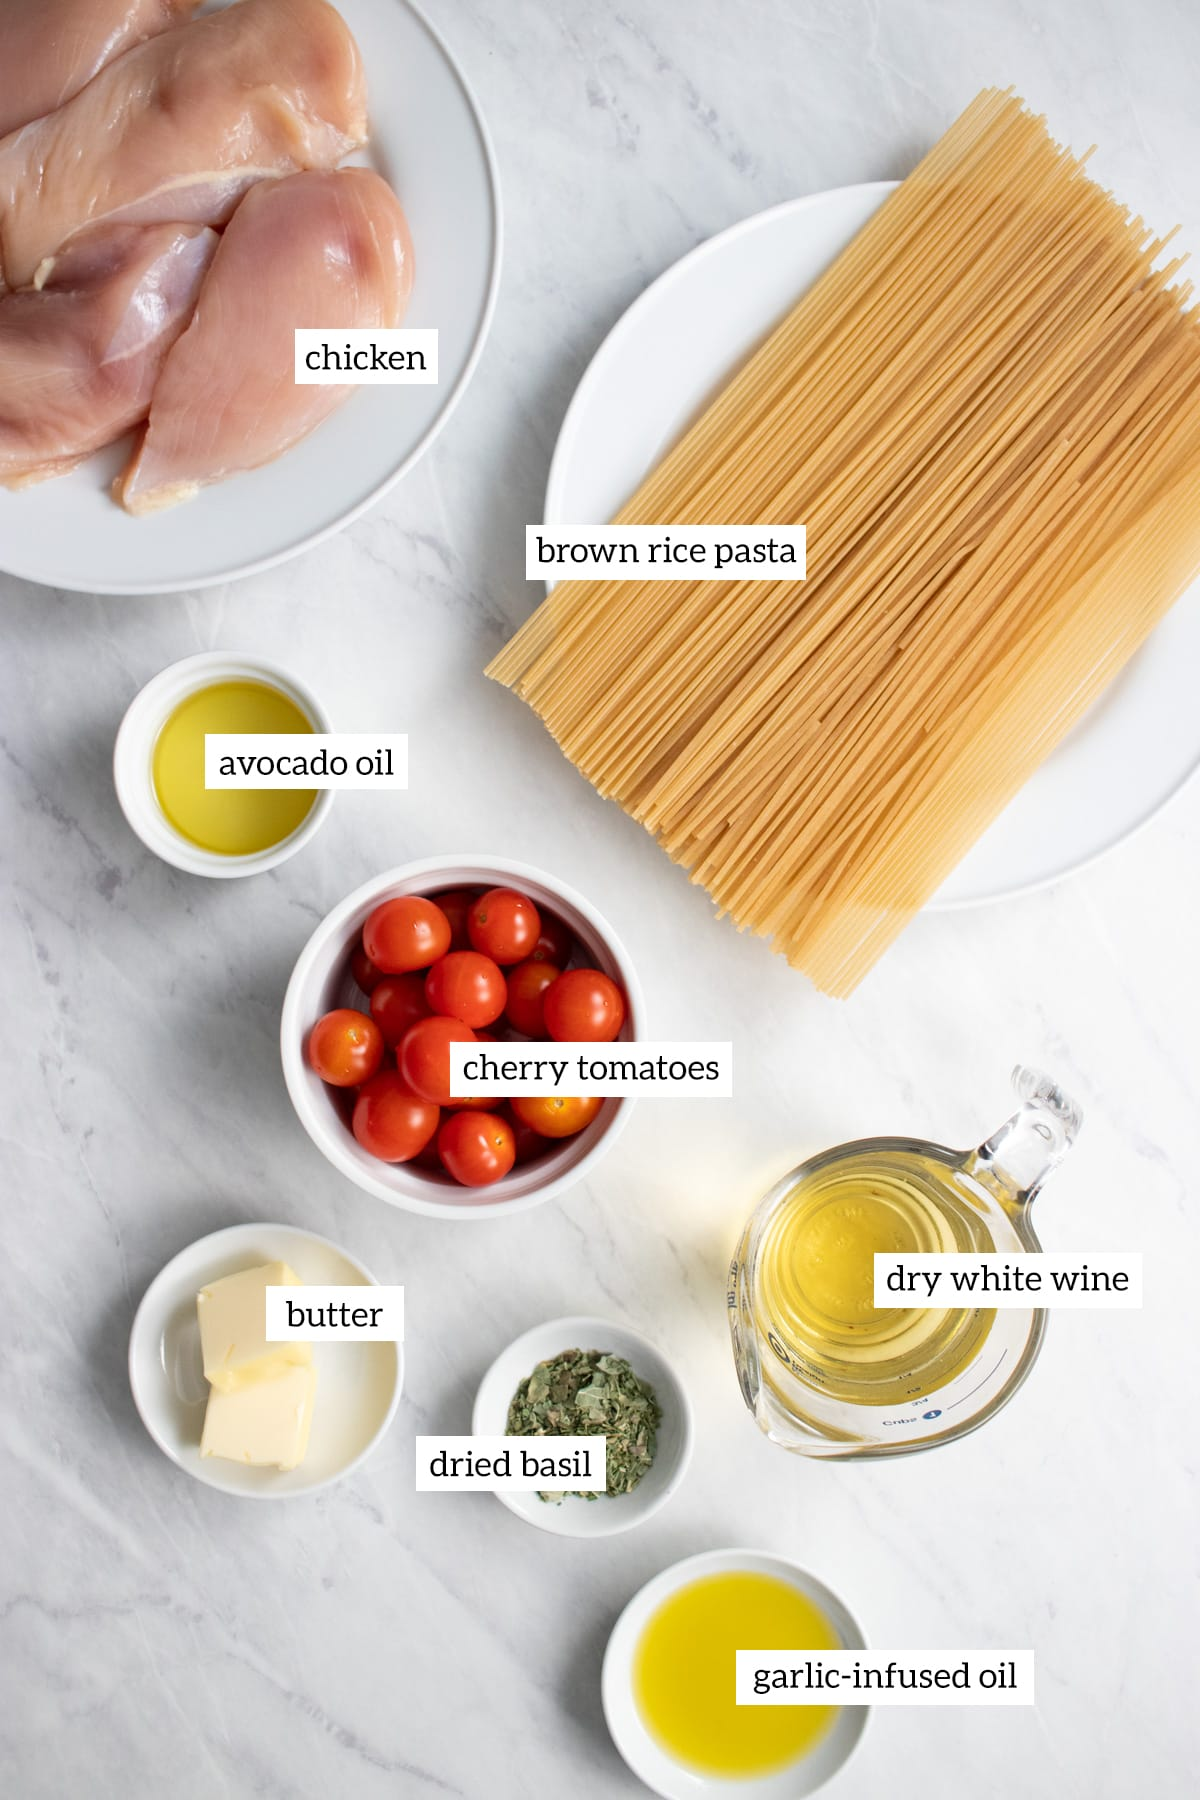 Ingredients needed for this low FODMAP spaghetti with chicken and cherry tomatoes recipe are measured out into individual containers.